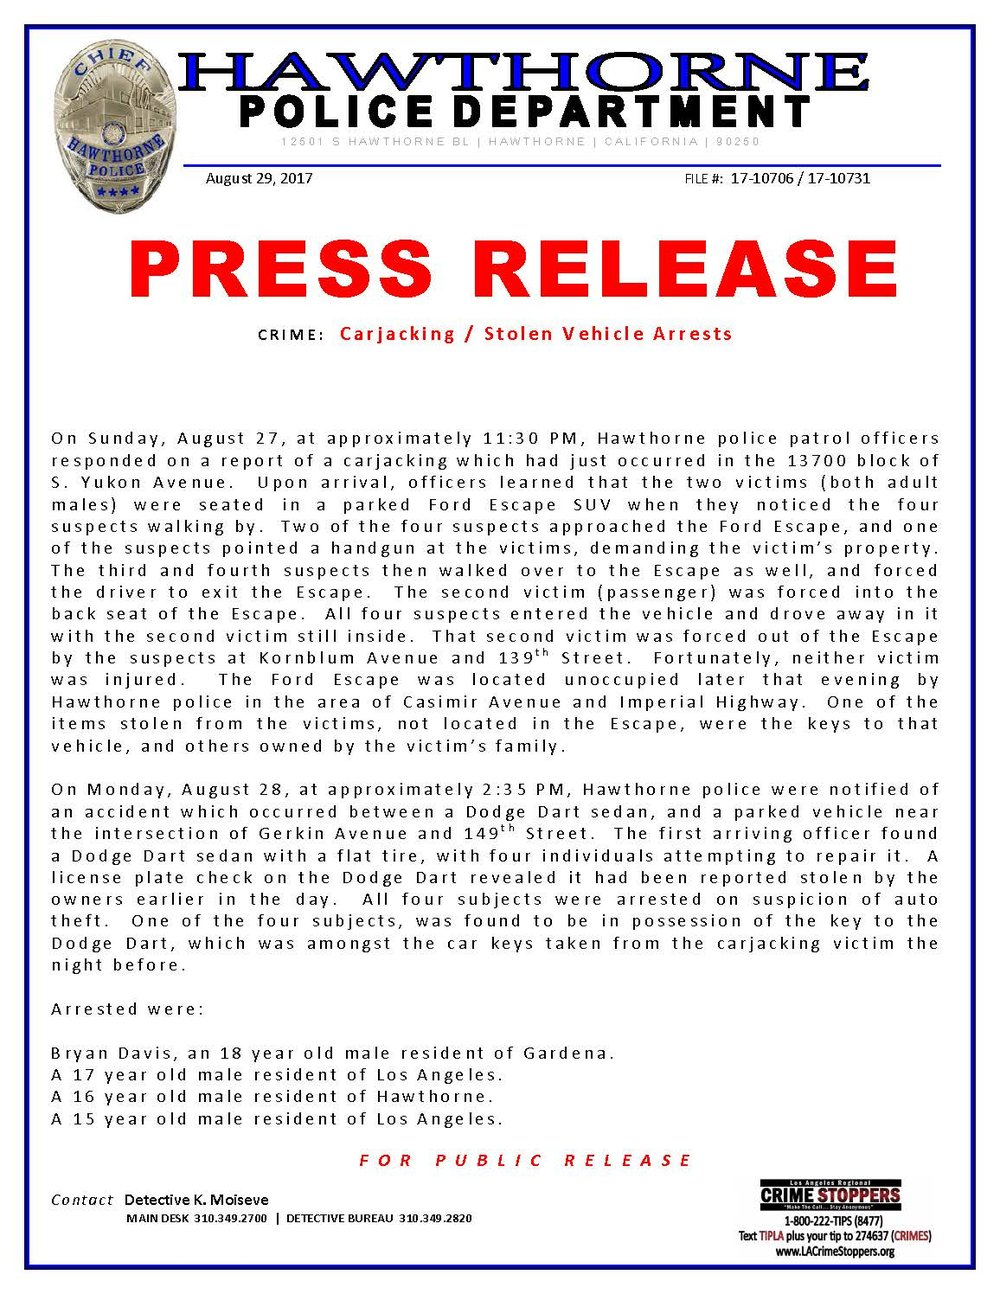 Carjacking stolen vehicle - arrests page 1